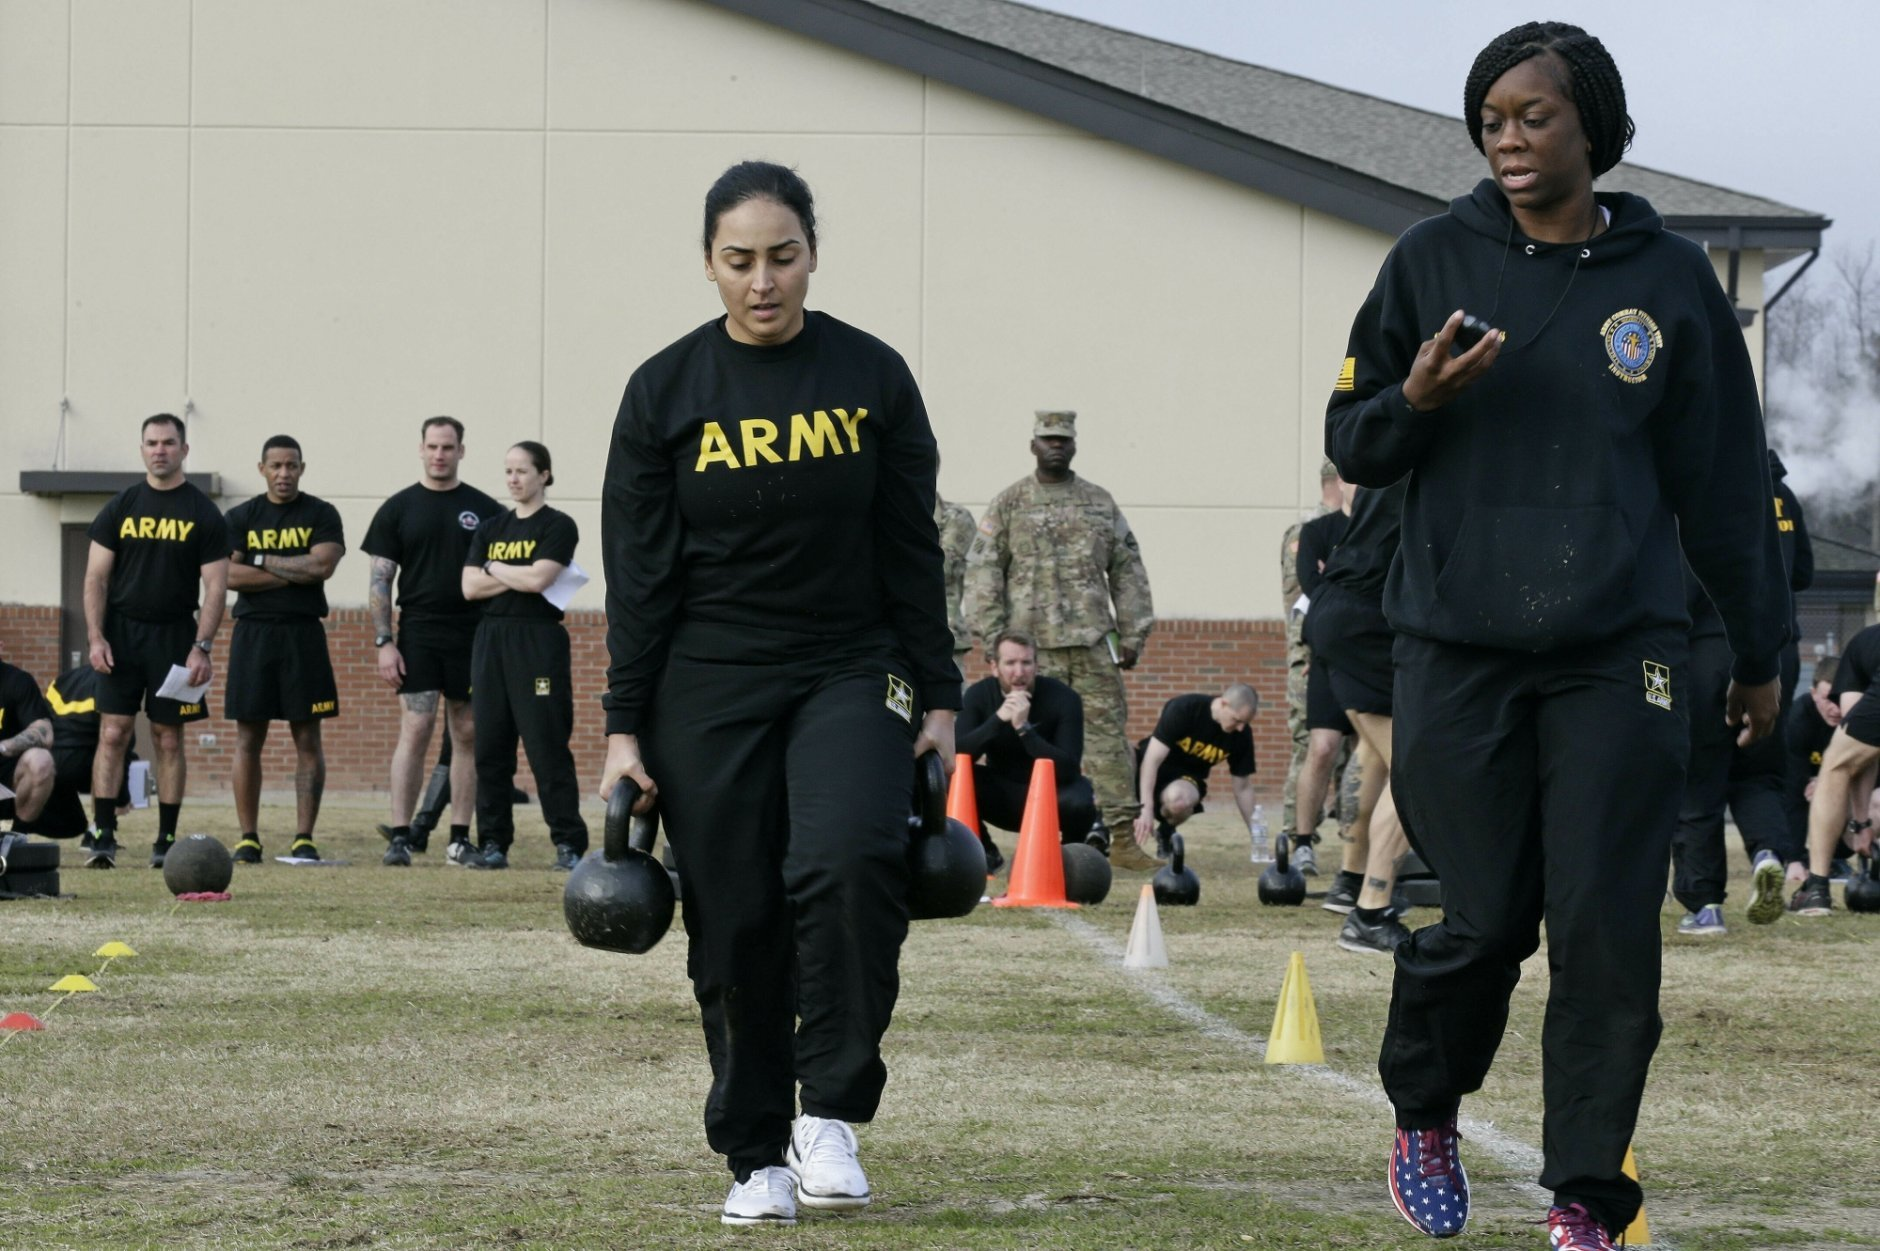 In this  Jan. 8, 2019, photo, U.S Army Staff Sgt. Idis Arroyo,left, carries weights while training to serve as an instructor in the new Army combat fitness test at Fort Bragg, N.C. The new test is designed to be a more accurate test of combat readiness than the current requirements. (AP Photo/Gerry Broome)